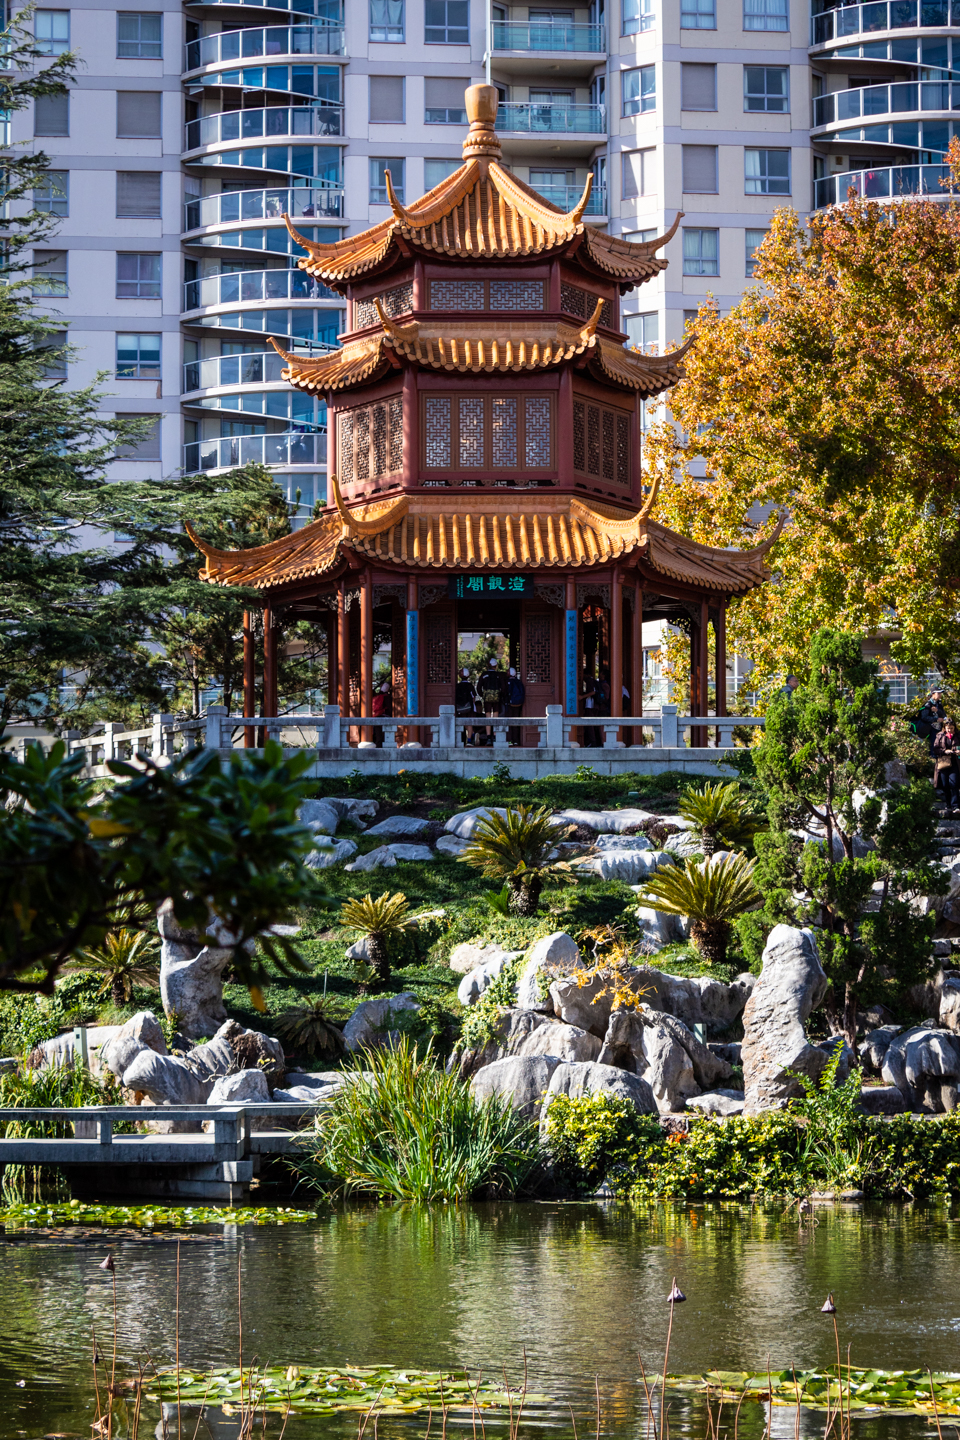 CRH_2018_CHINESE_GARDEN_OF_FRIENDSHIP_3035.jpg